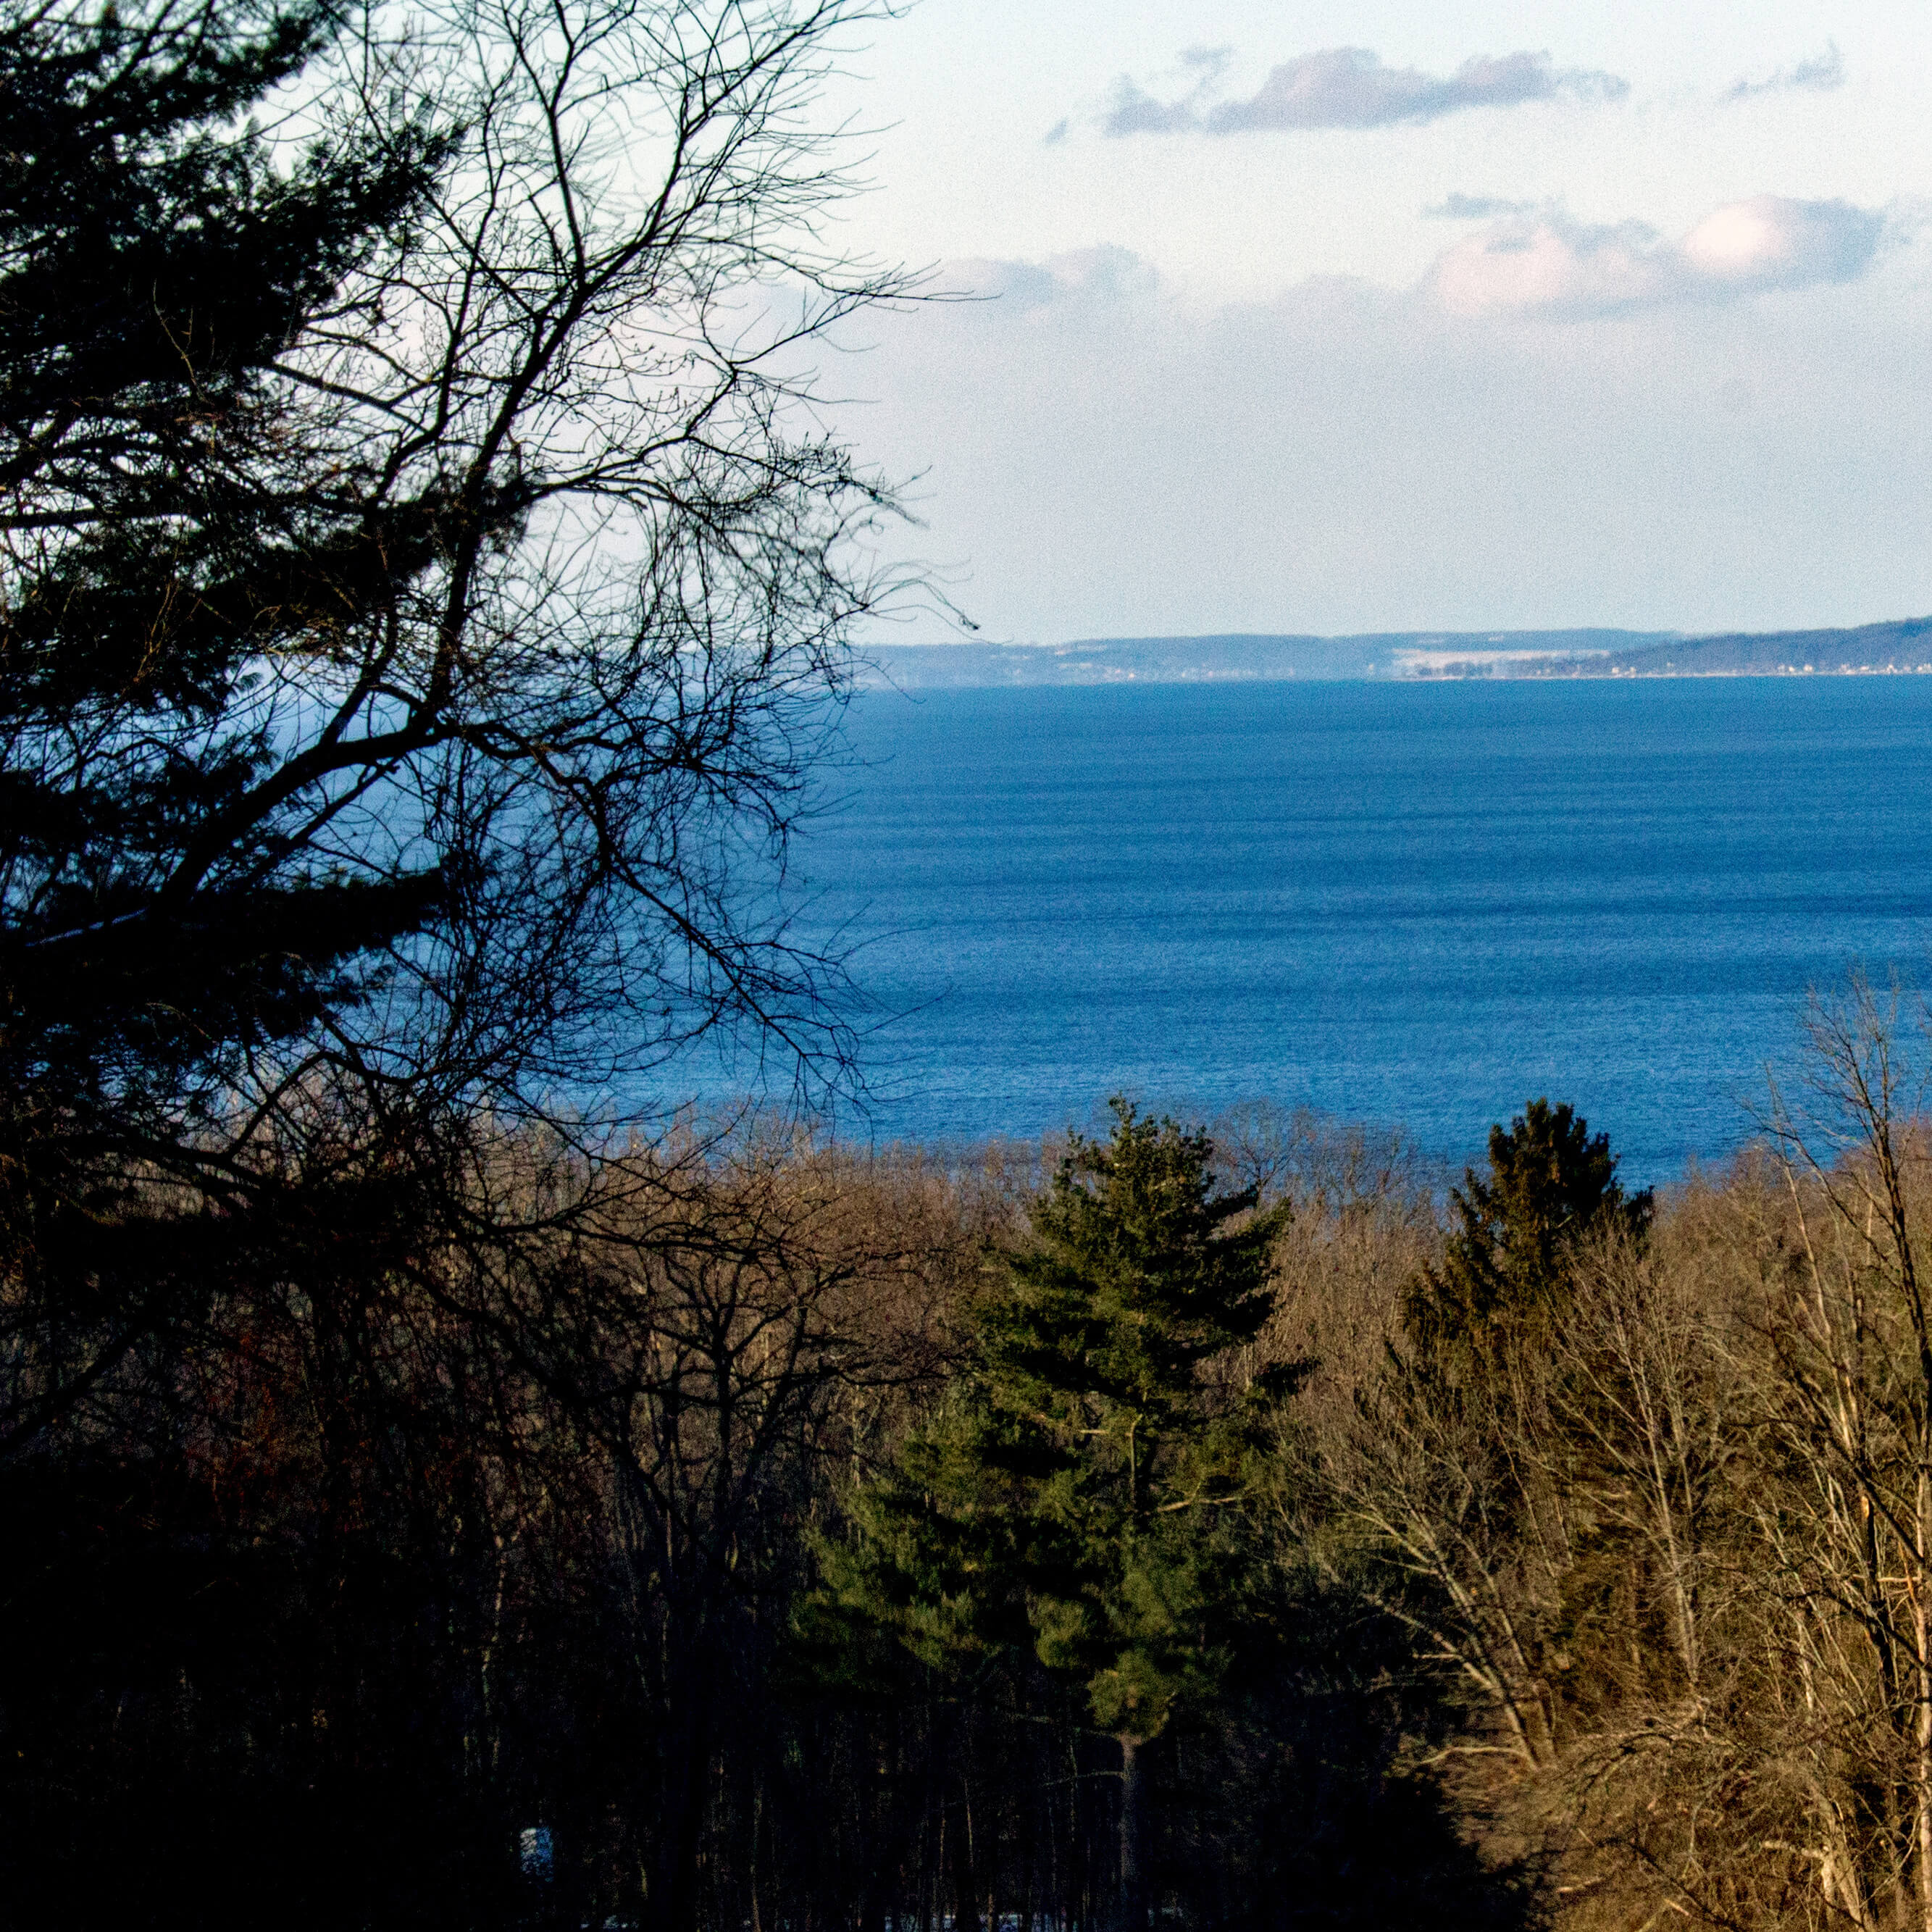 View of Cayuga Lake